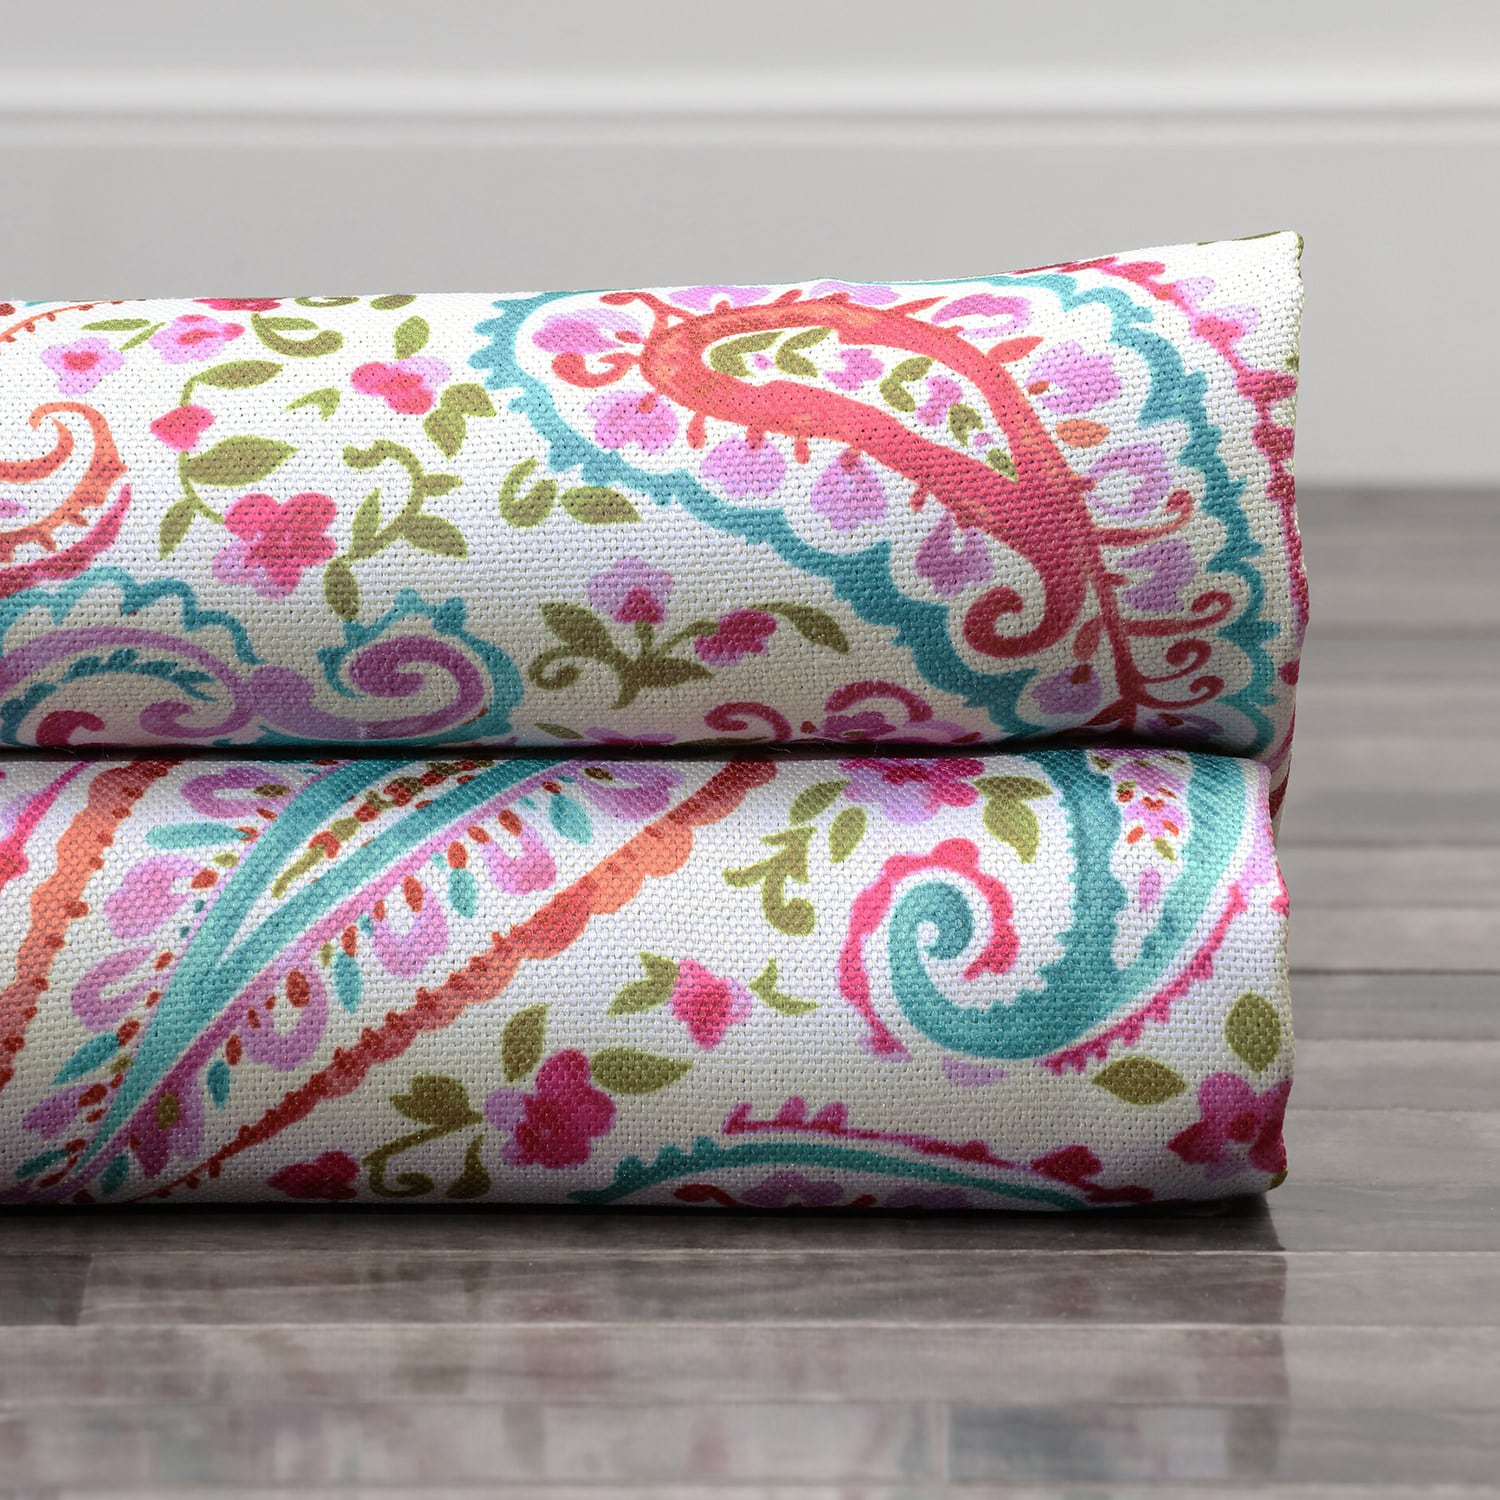 Bohemian Paisley Pink Printed Linen Textured Blackout Swatch